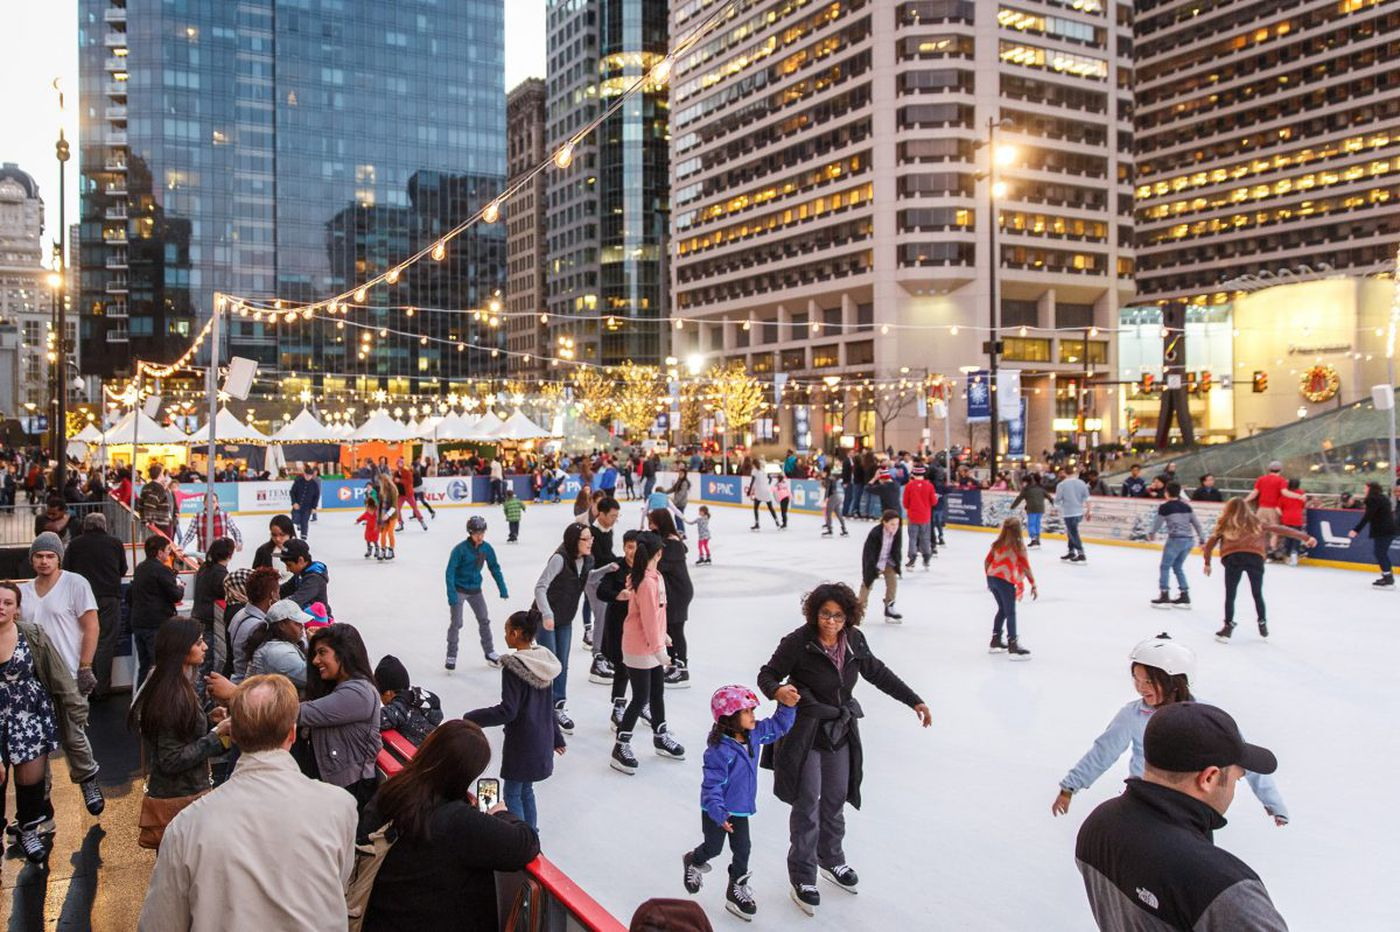 9 things not to miss at Dilworth Park Wintergarden this year